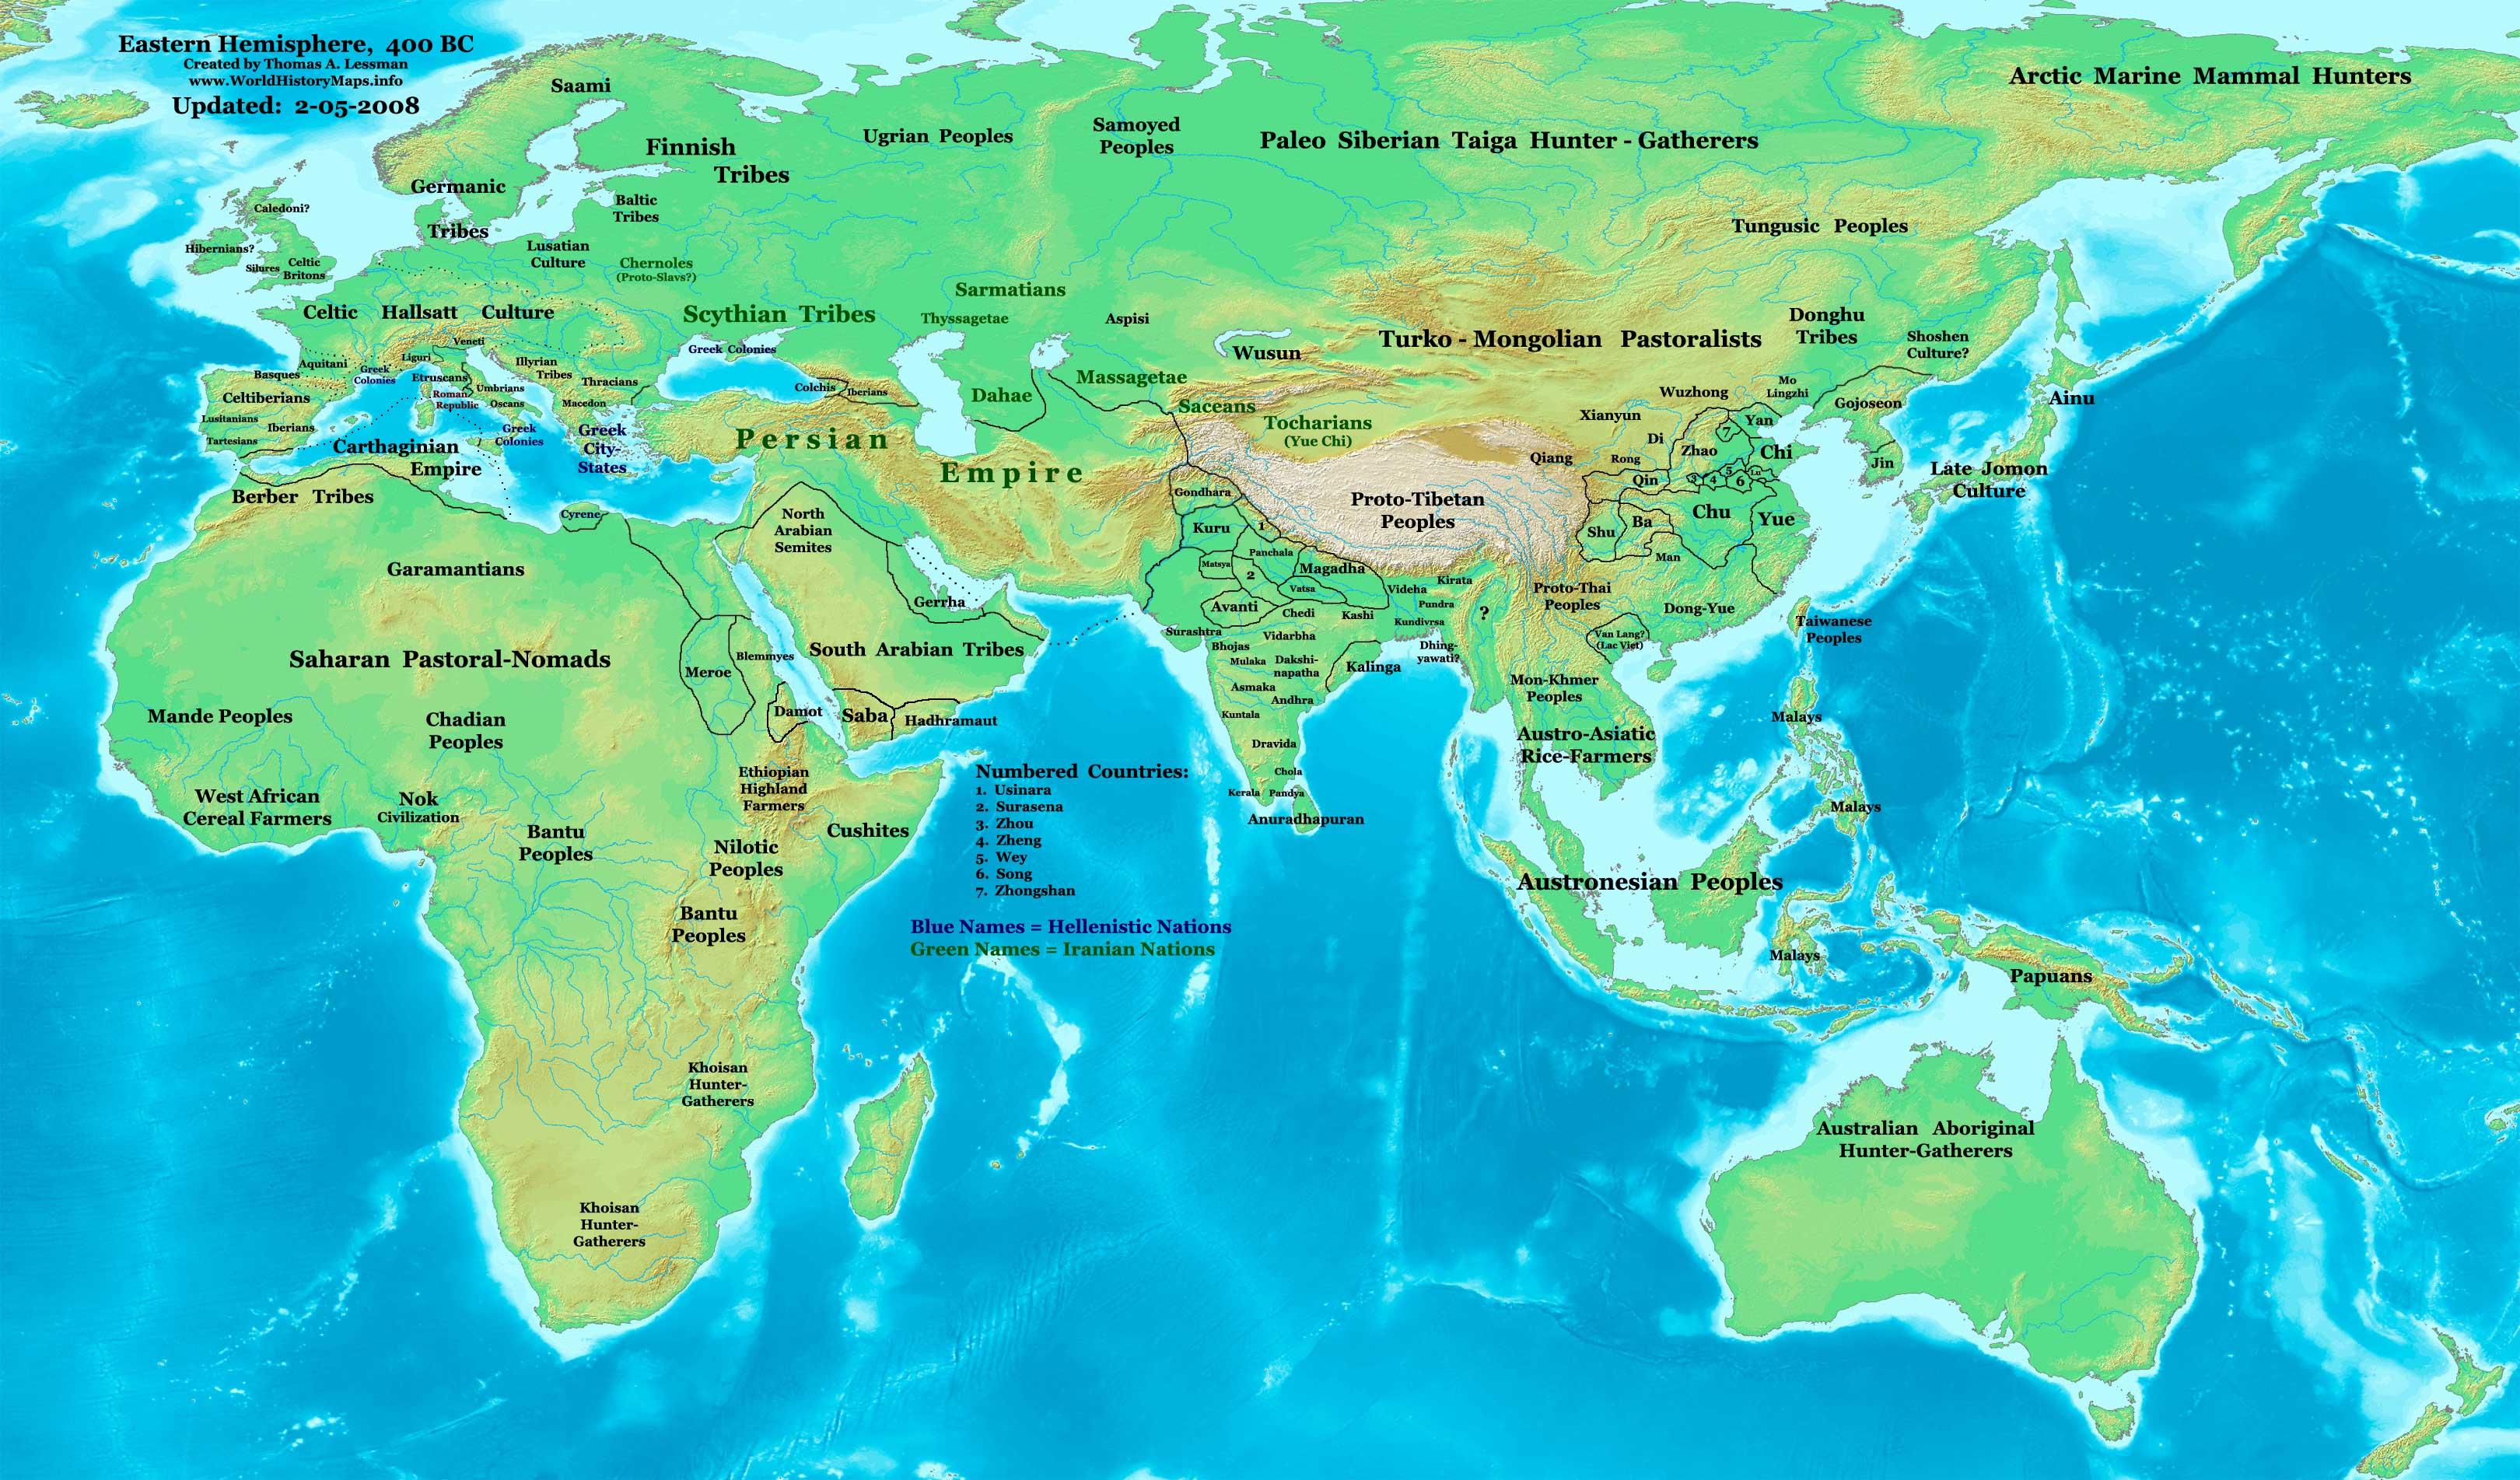 Map Of The Eastern Hemisphere World History Maps by Thomas Lessman